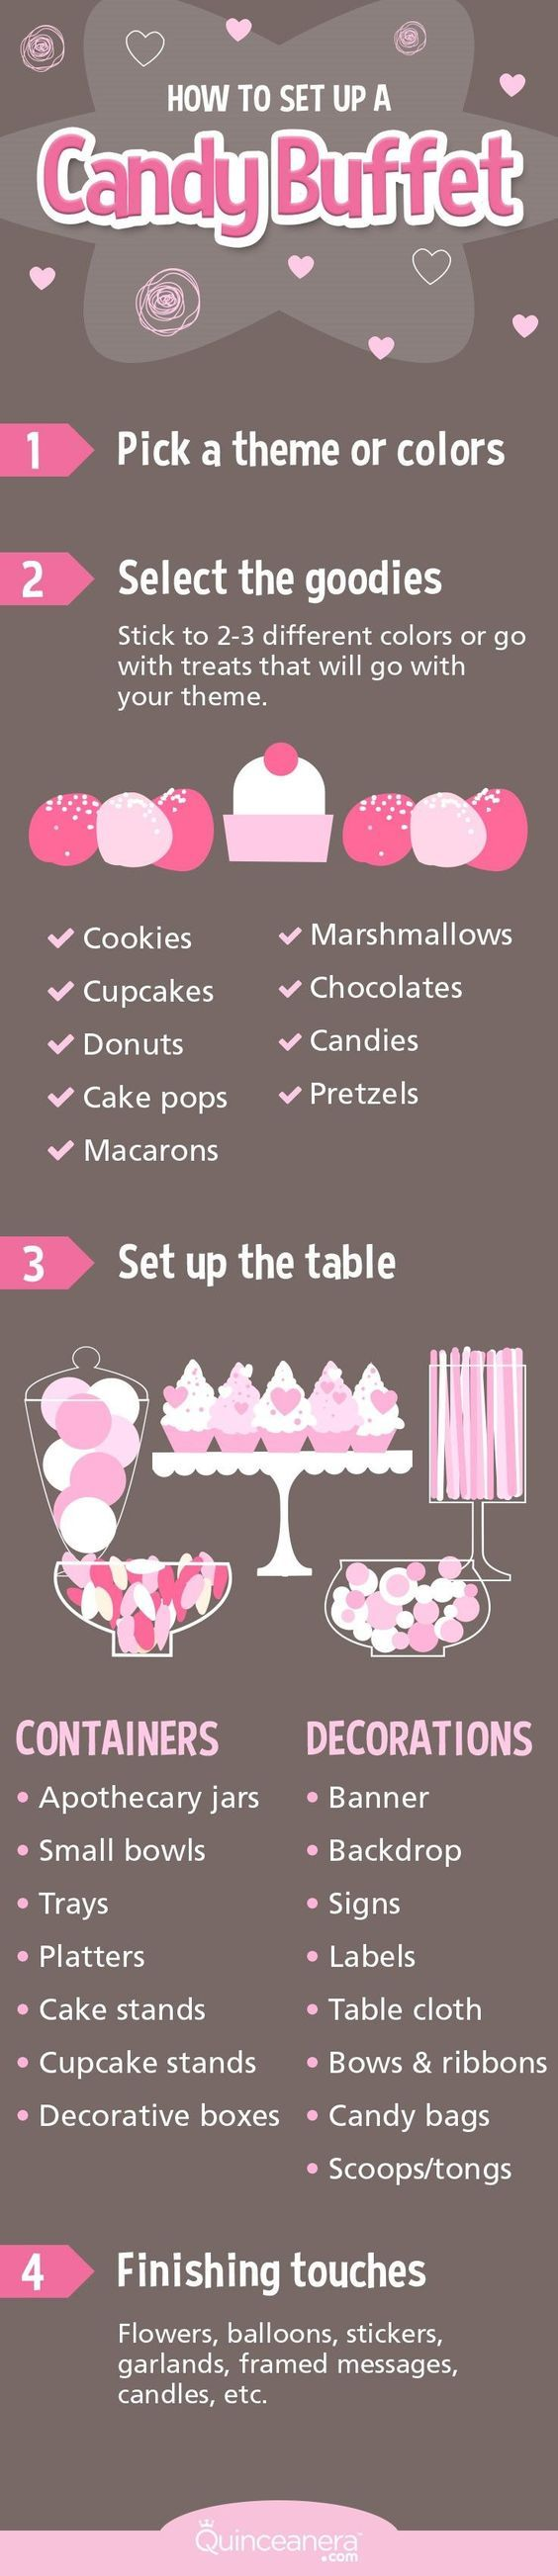 If you are having a candy buffet for your quince but have no clue how to set it up yourself, you've come to the right place!